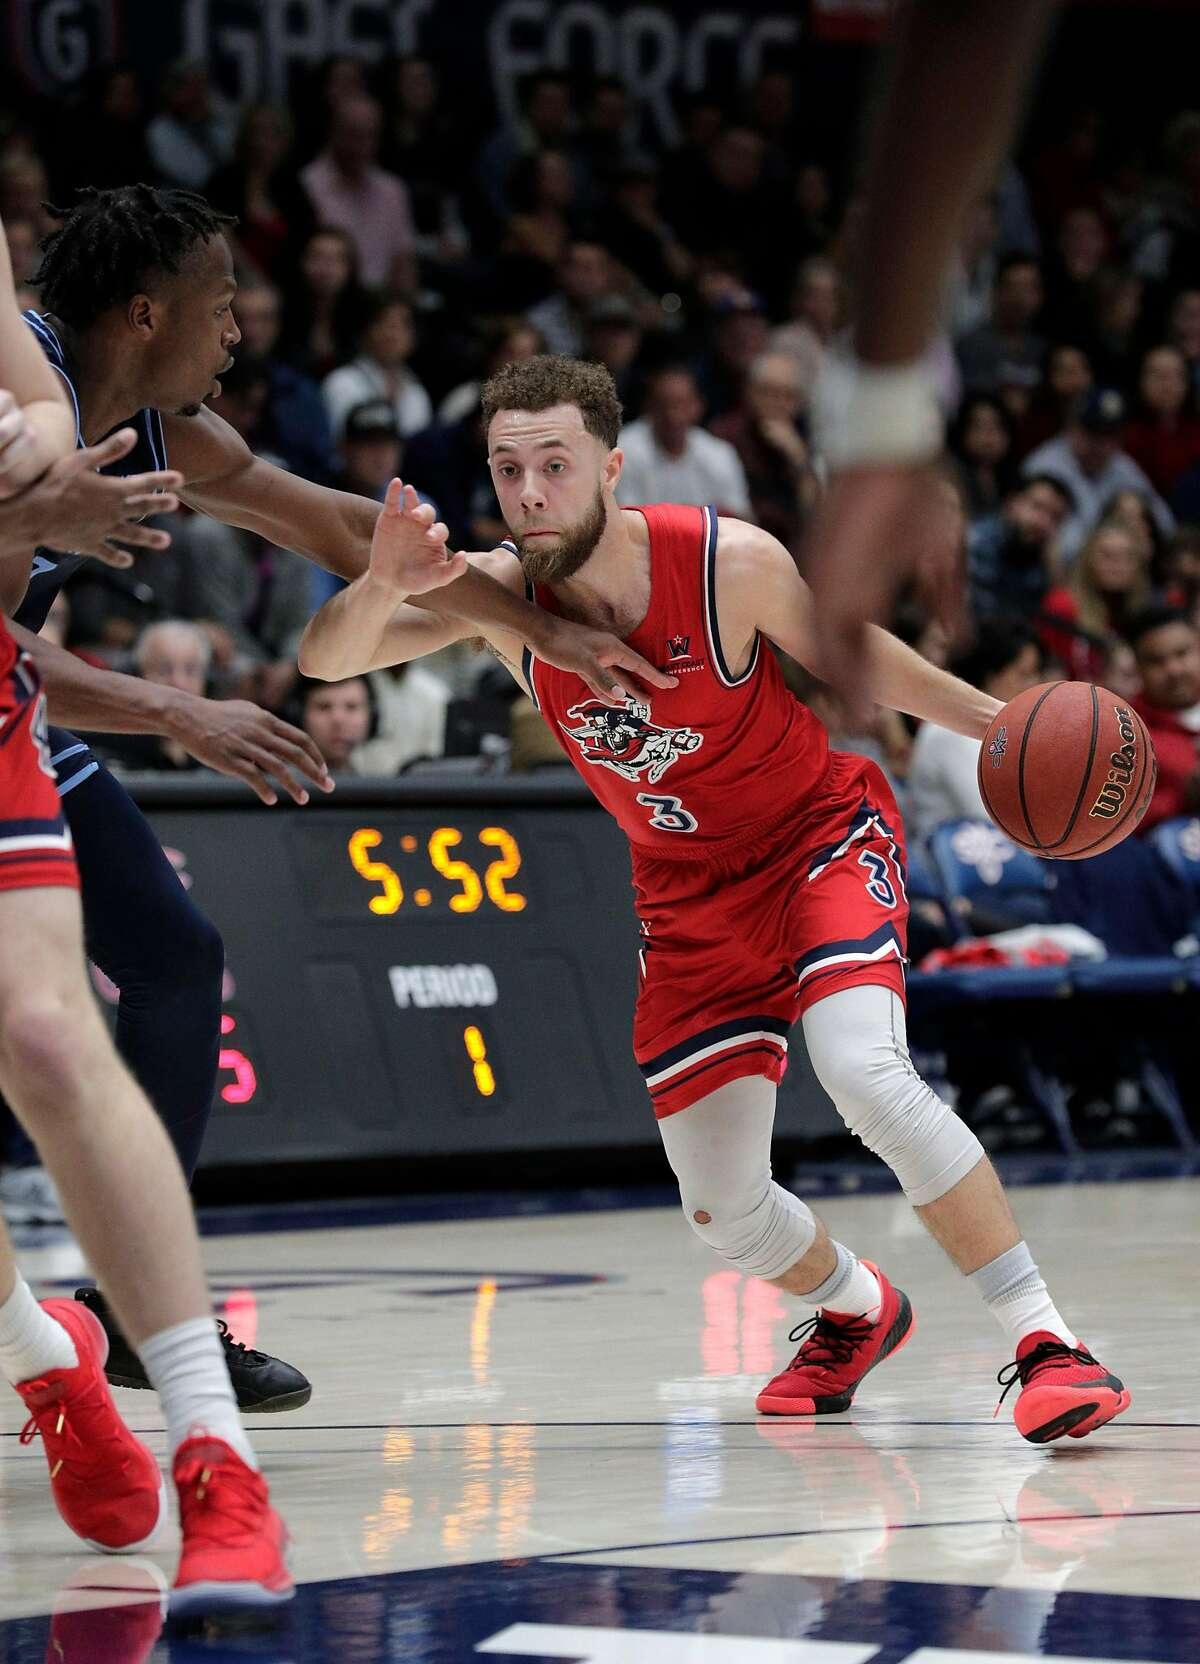 Jordan Ford (3) drives to the basket in the first half as the St. Mary's Gaels played the University of San Diego Toreros at McKeon Pavilion in the Gael's final home game in Moraga, Calif., on Saturday, February 22, 2020.